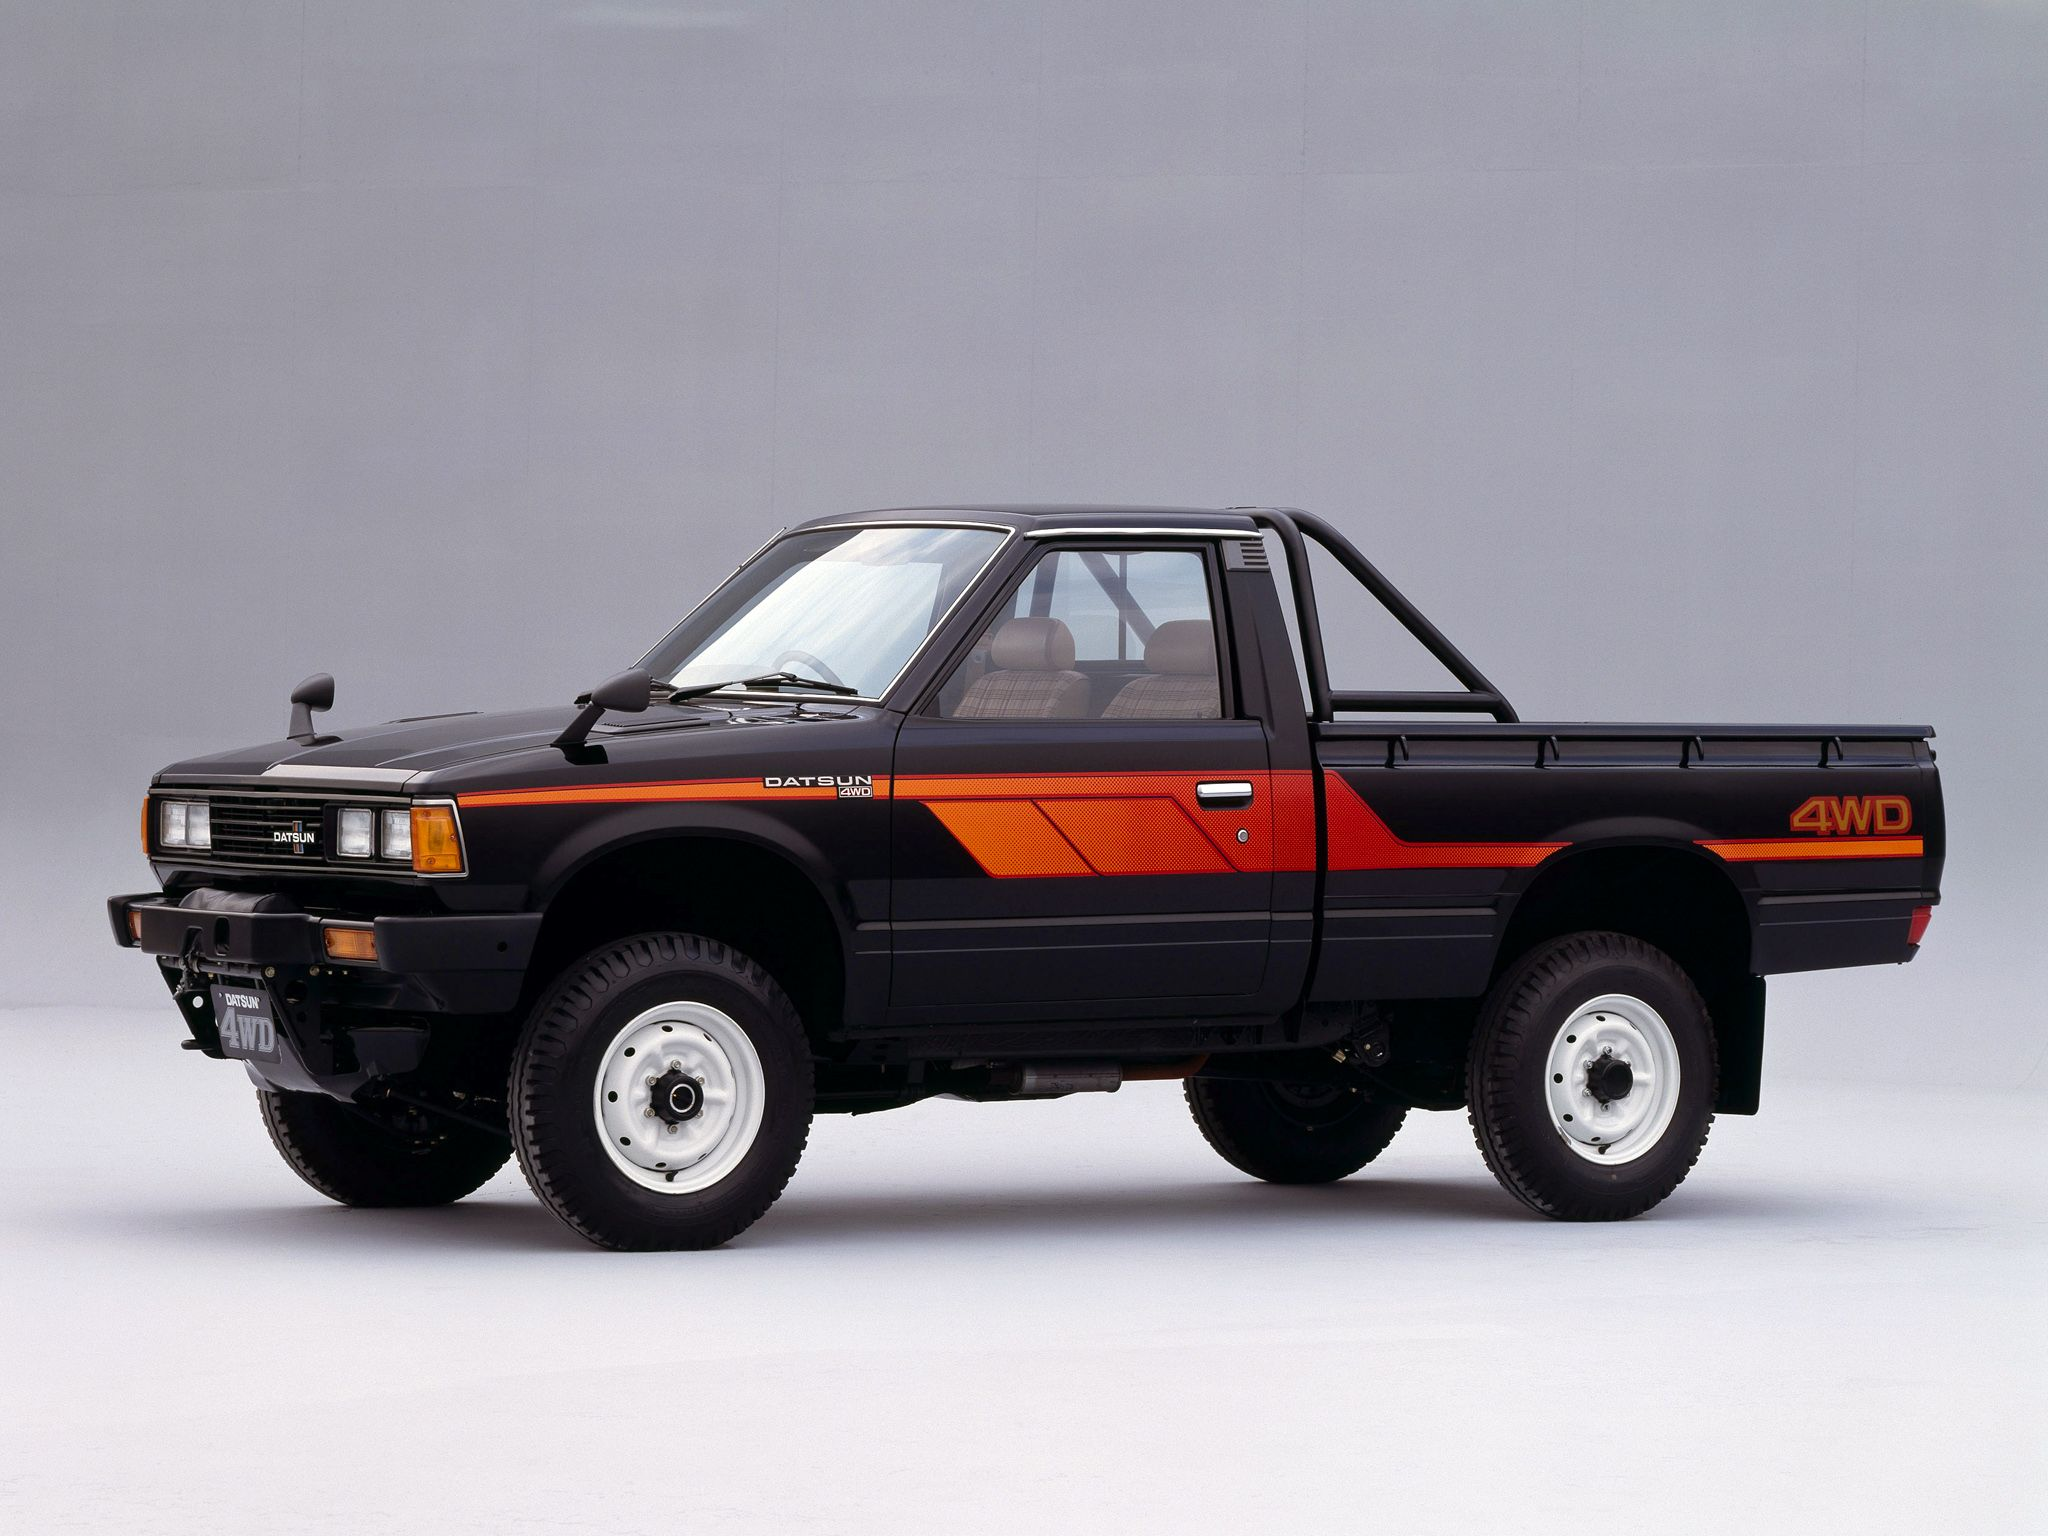 image result for nissan datsun 4wd pickup 1983 trucks pinterest nissan search and cars. Black Bedroom Furniture Sets. Home Design Ideas